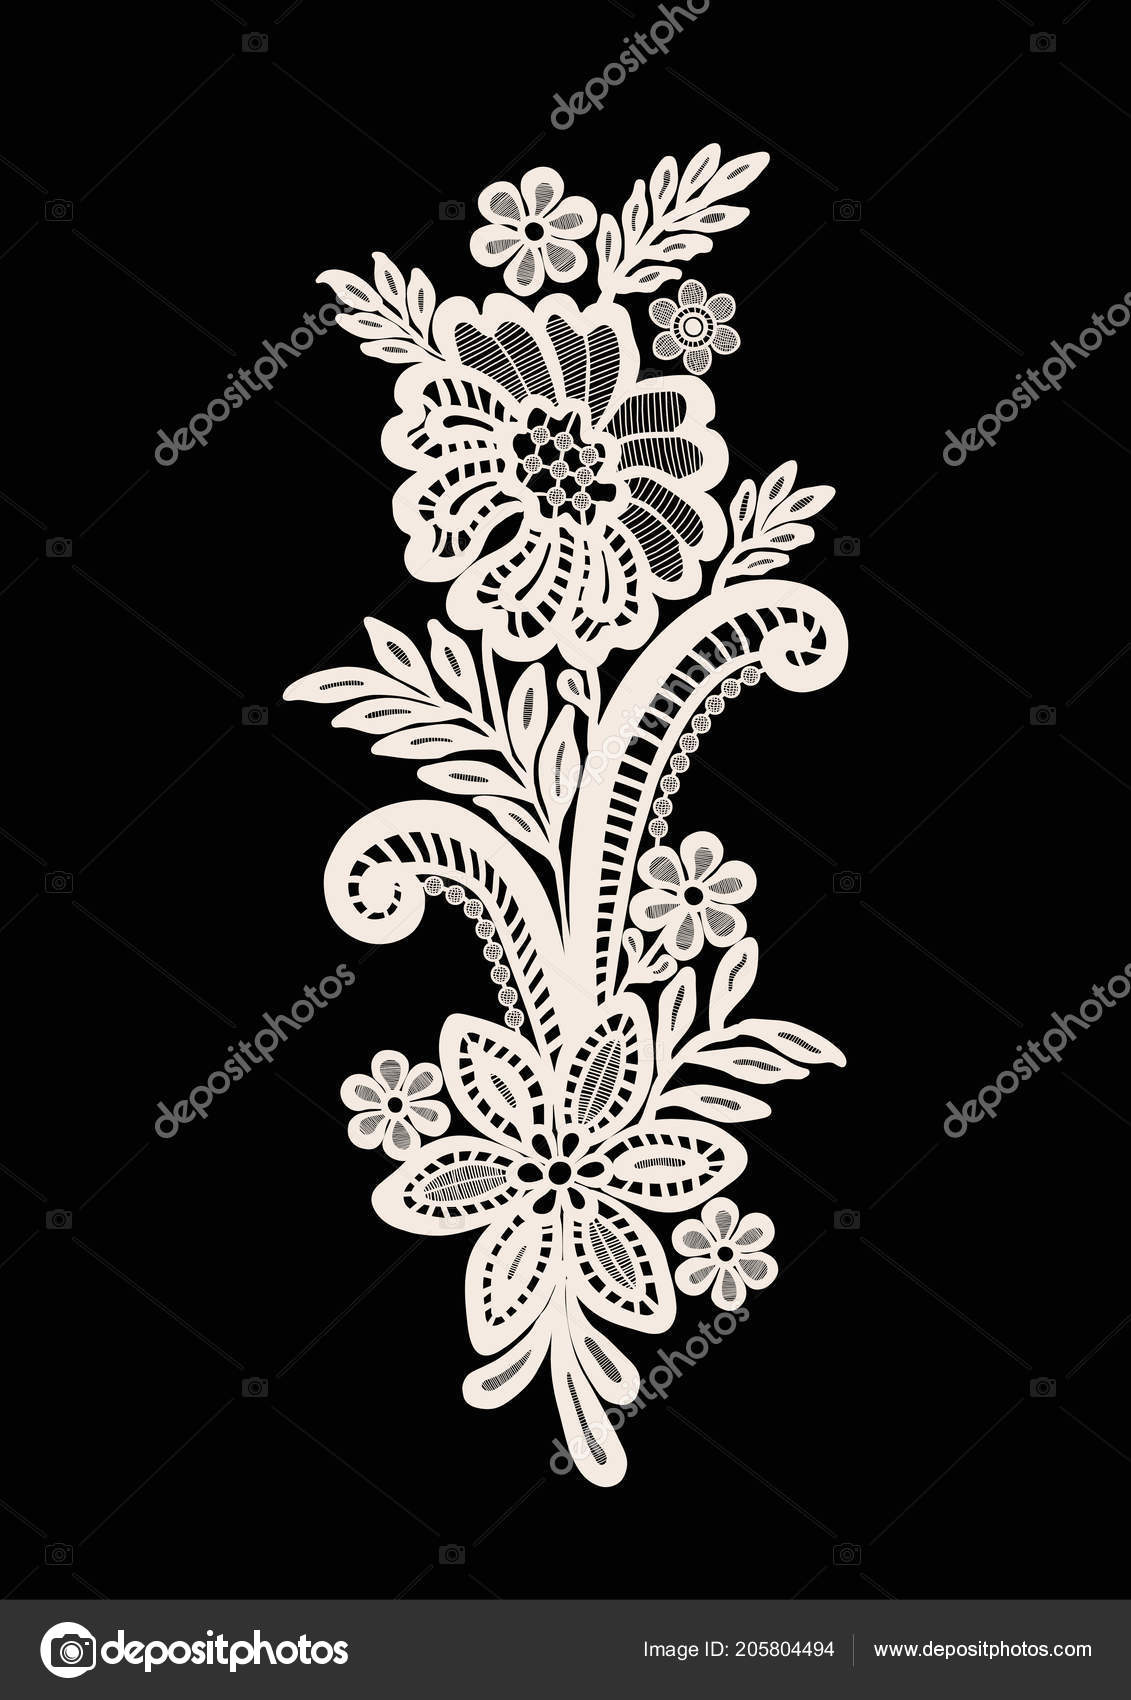 Neck Embroidery Design Lace Print Vector Black Background Stock Vector C Workingpens 205804494